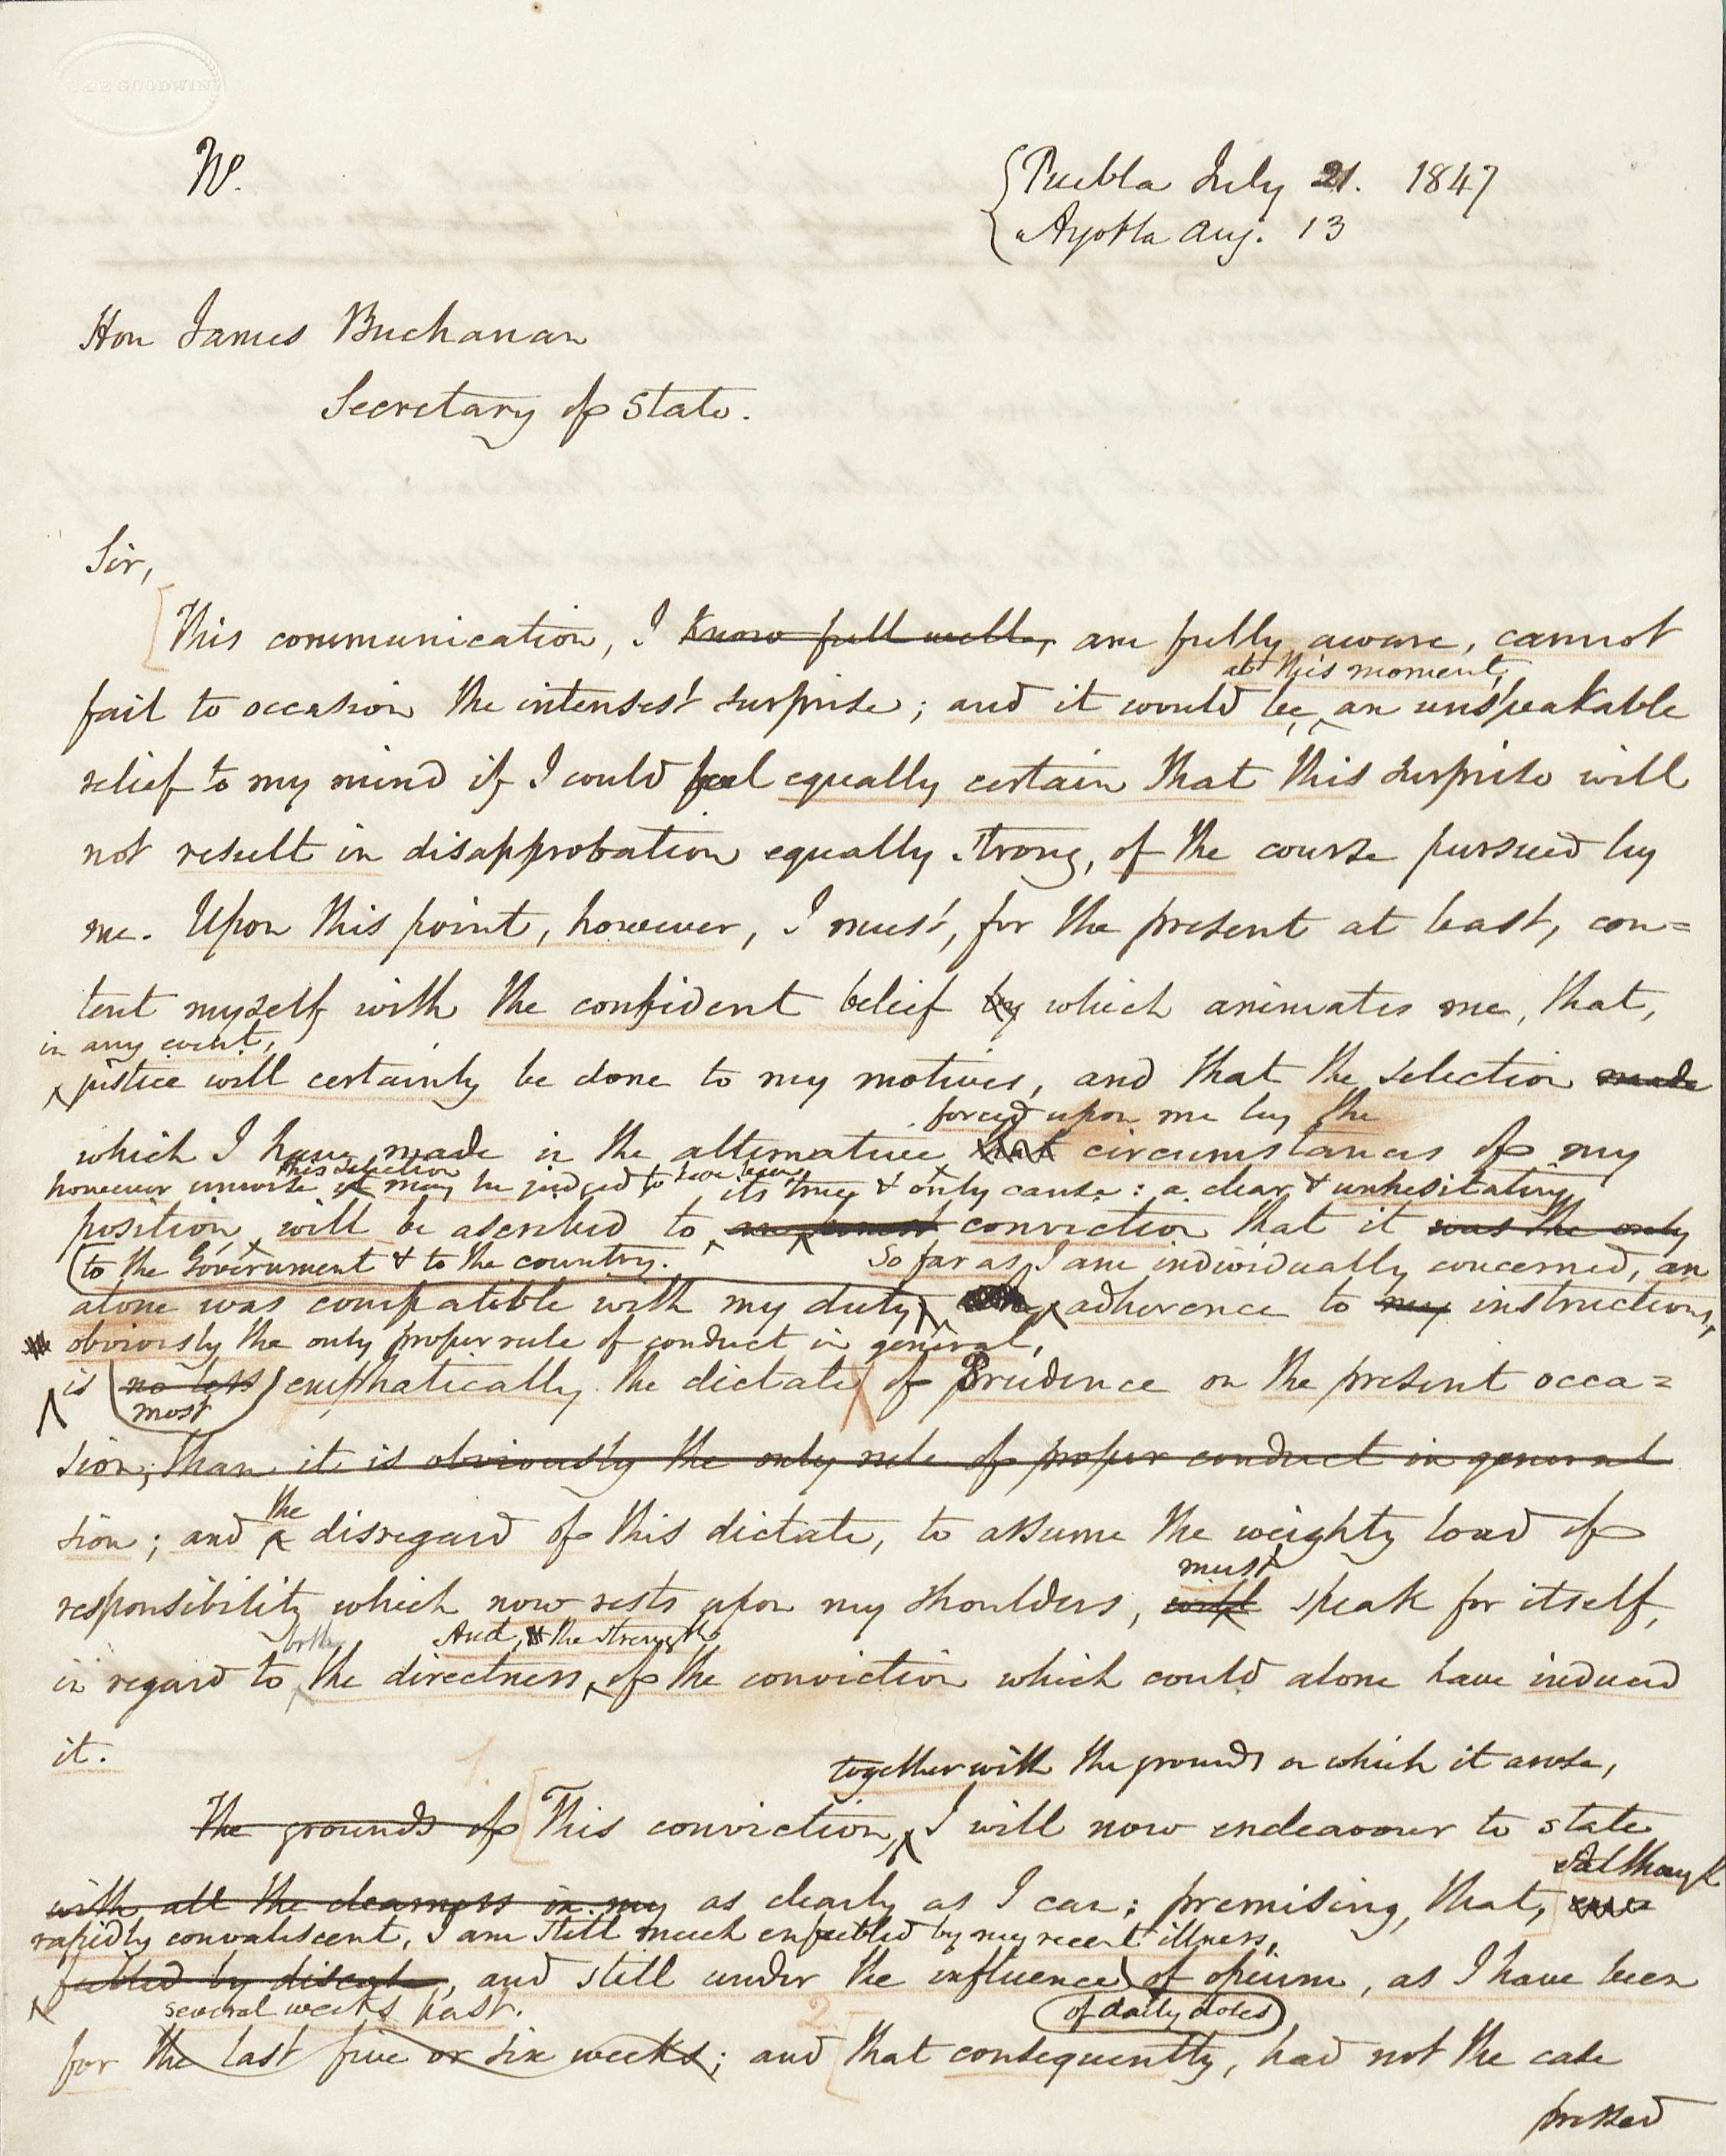 Letter draft from Nicholas Trist to James Buchanan, 1847 (Image by Petrina Jackson)